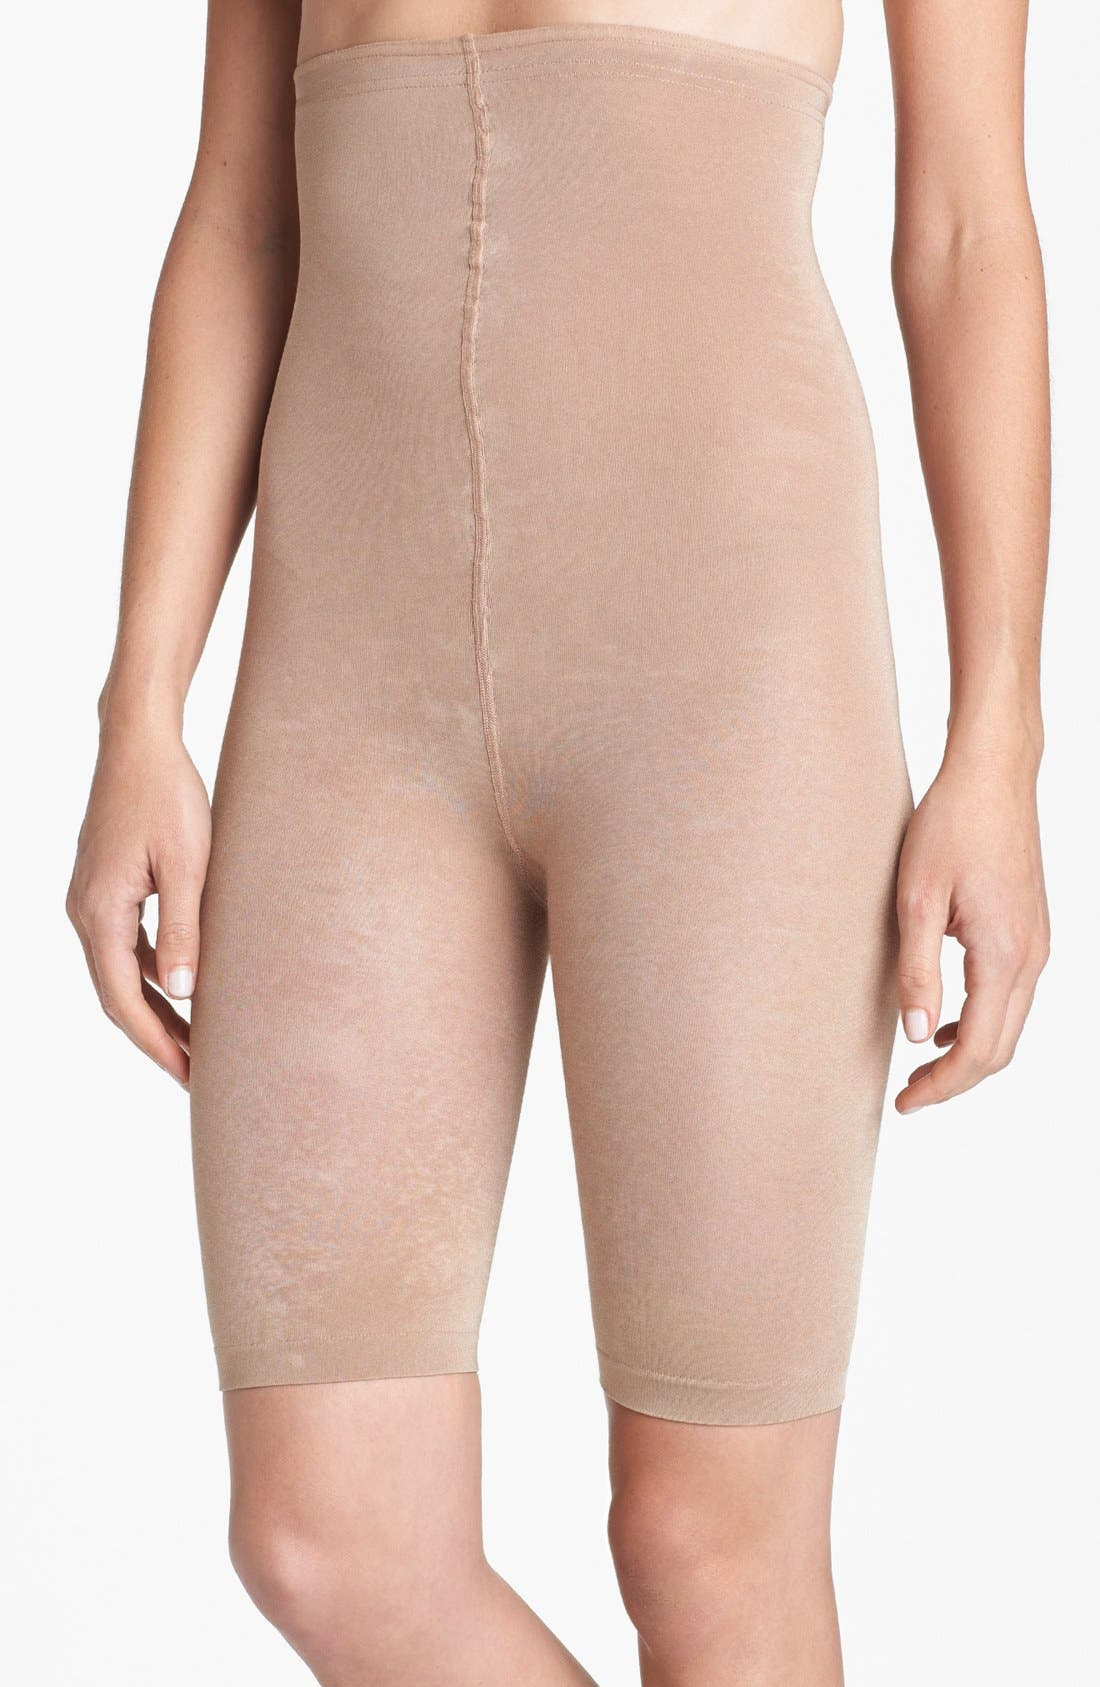 Alternate Image 1 Selected - Donna Karan 'The Body Perfect' High Waist Mid Thigh Shaper